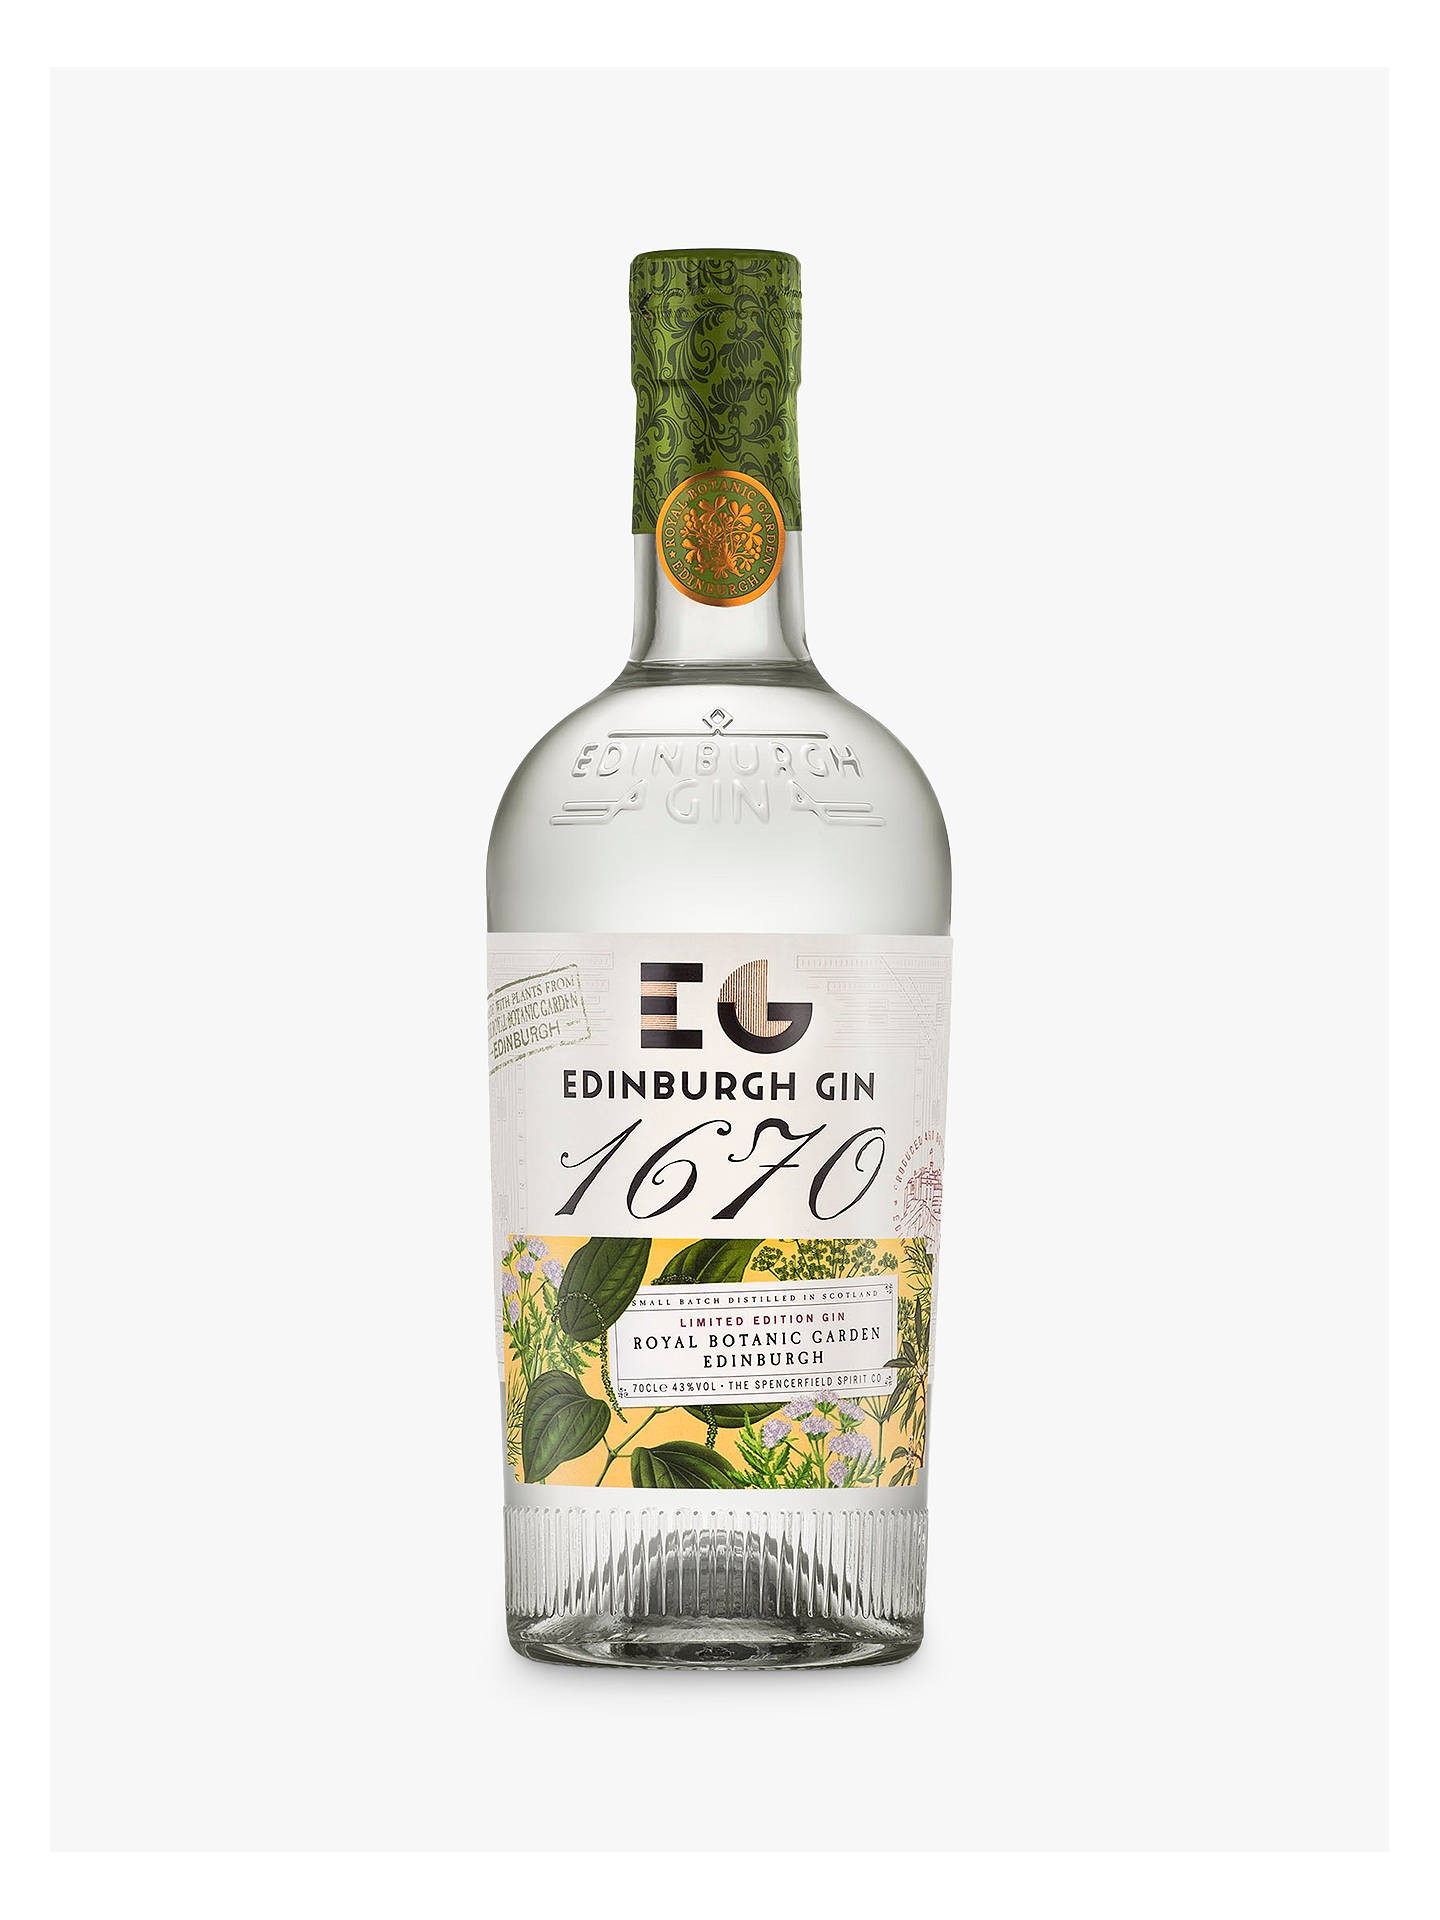 BuyEdinburgh Gin 1670, 70cl Online at johnlewis.com